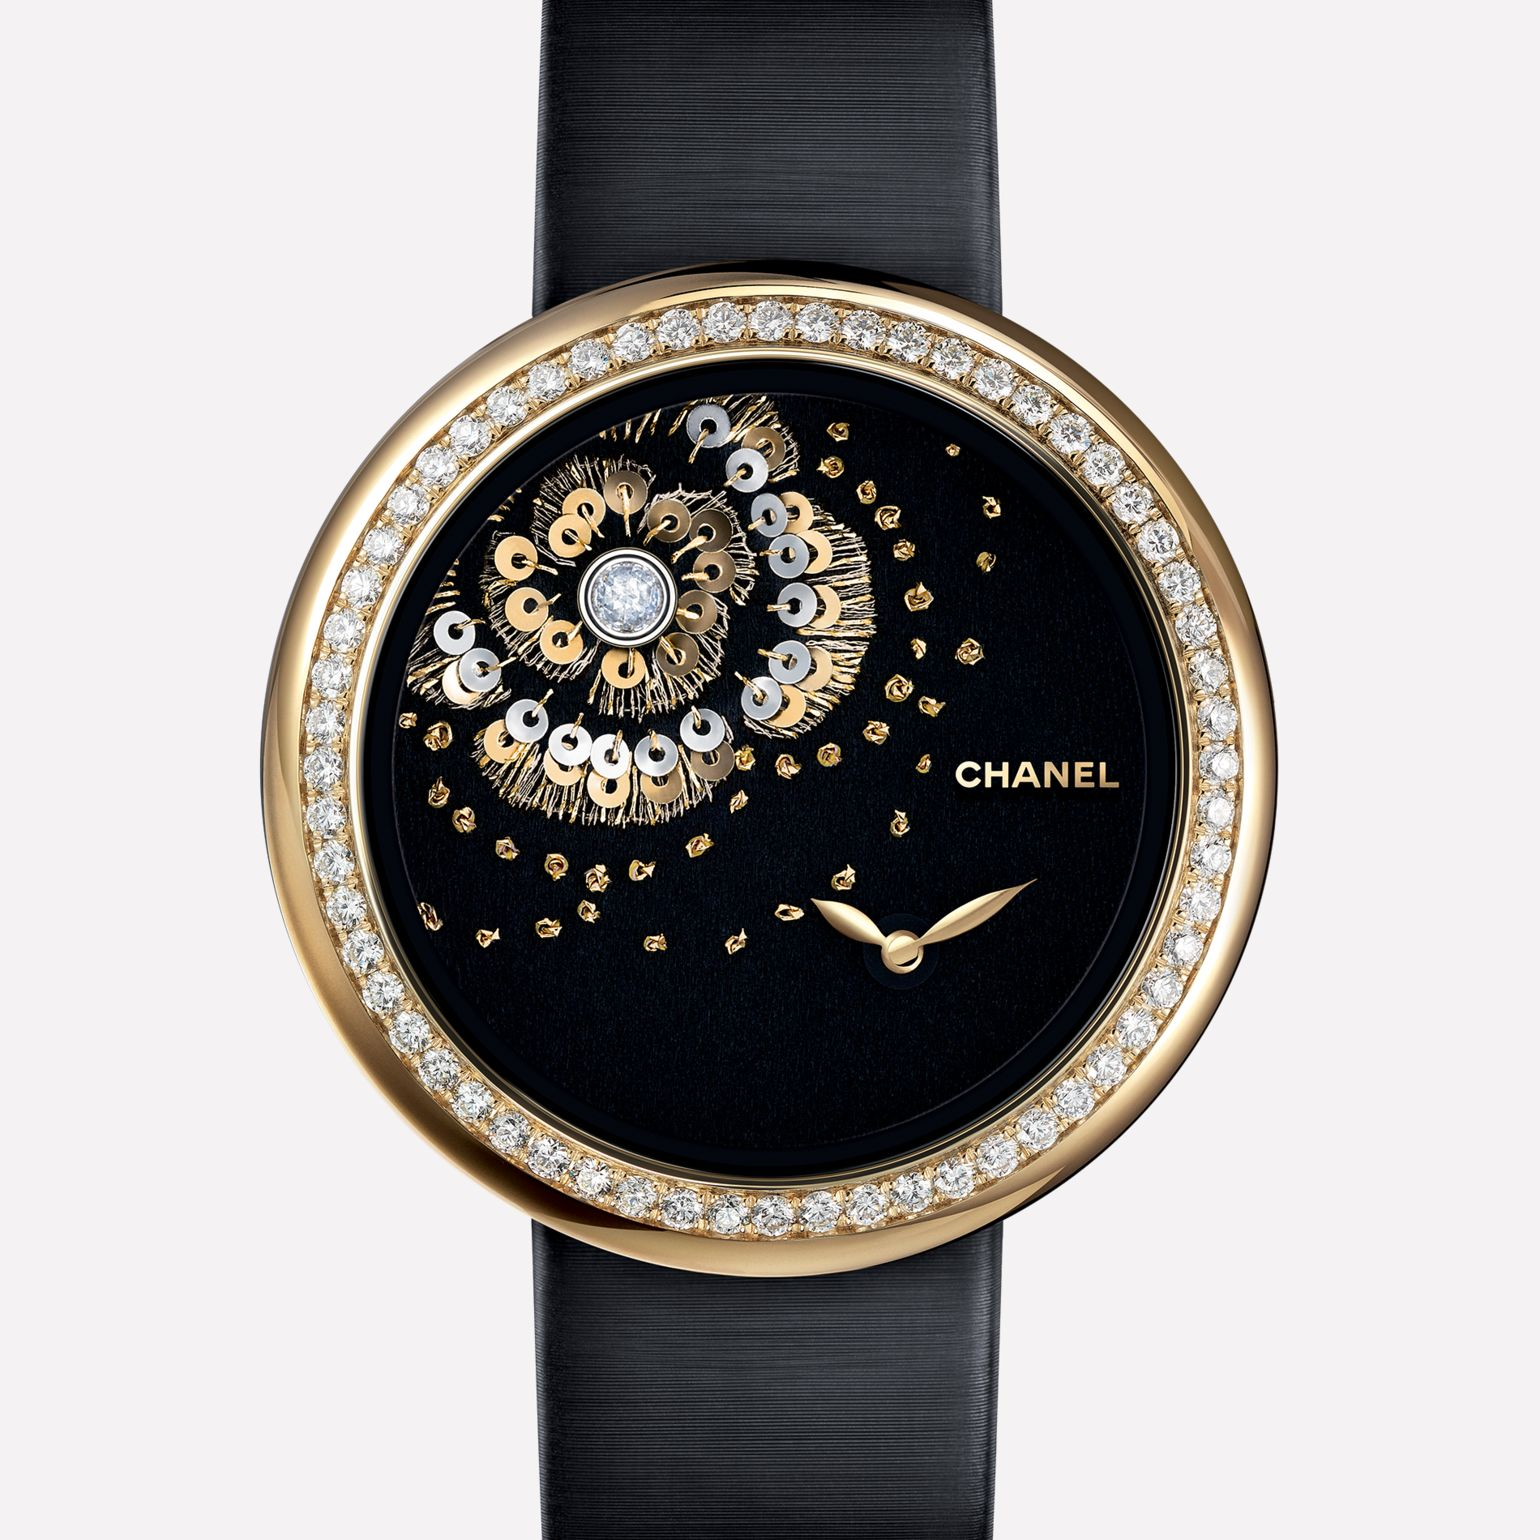 Mademoiselle Privé Watch Camellia in gold thread, diamonds and gold spangles - Lesage embroidery